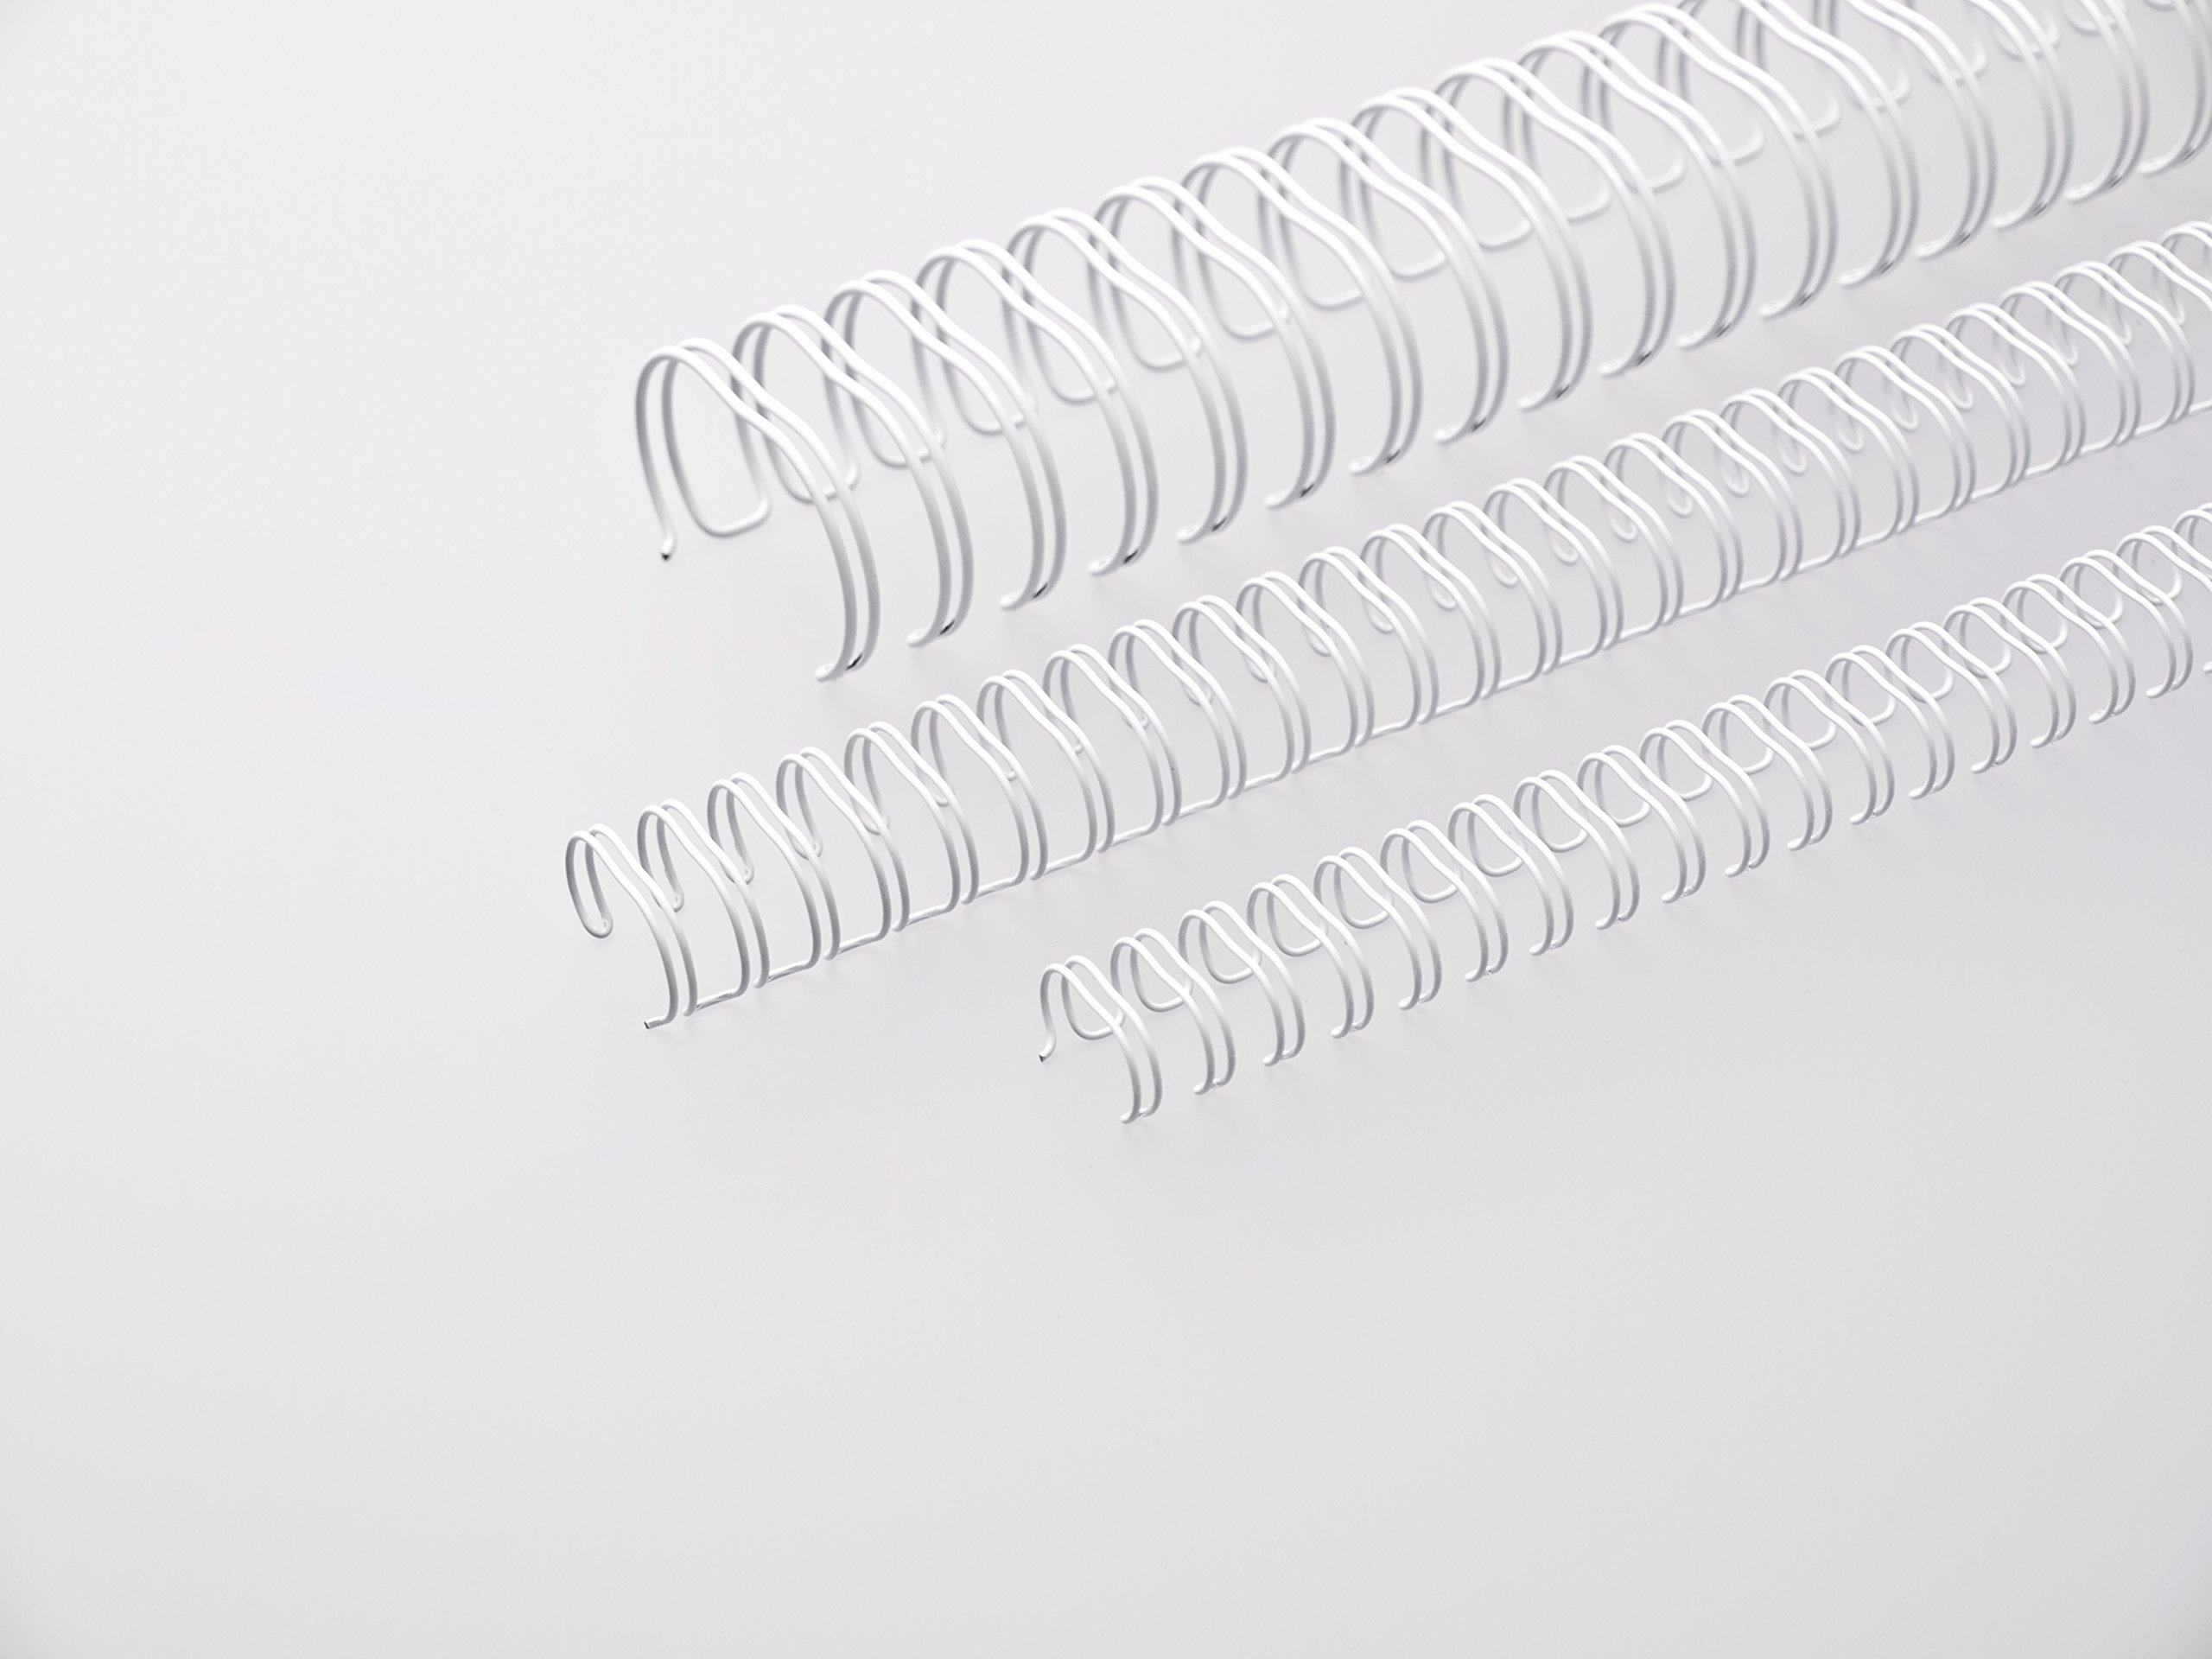 Renz 311270034 12.7 mm Ring Wire Cut Element - White. 3:1 Pitch. A4. 100 Wires per Box.